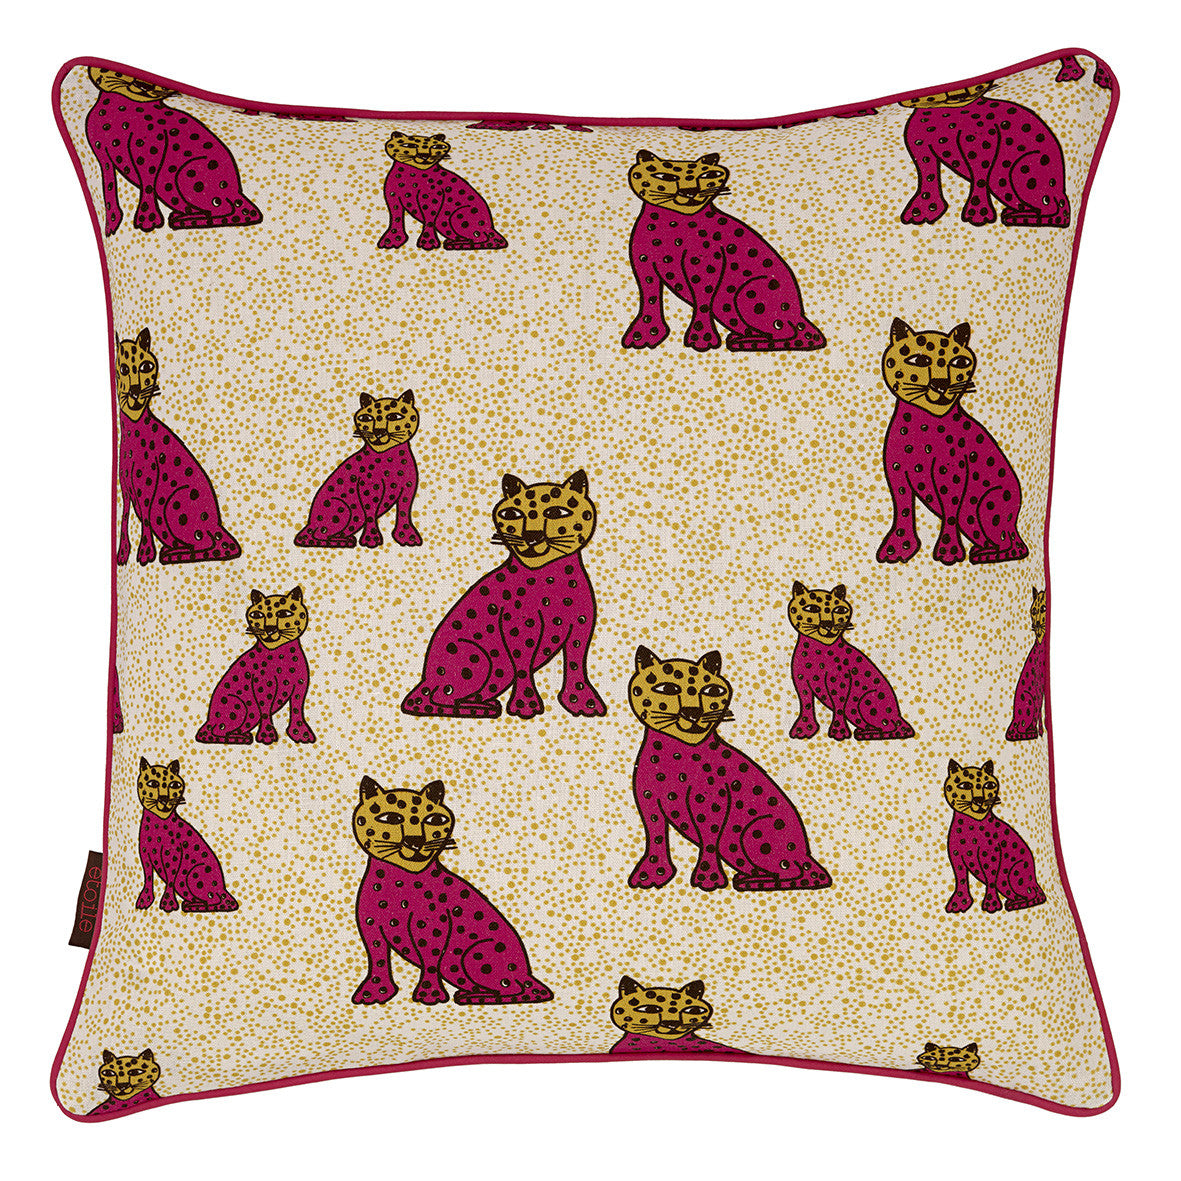 Graphic Leopard Pattern Decorative Throw Pillow In Fuchsia Pink Brown Mainandmerseyhomestore Ca